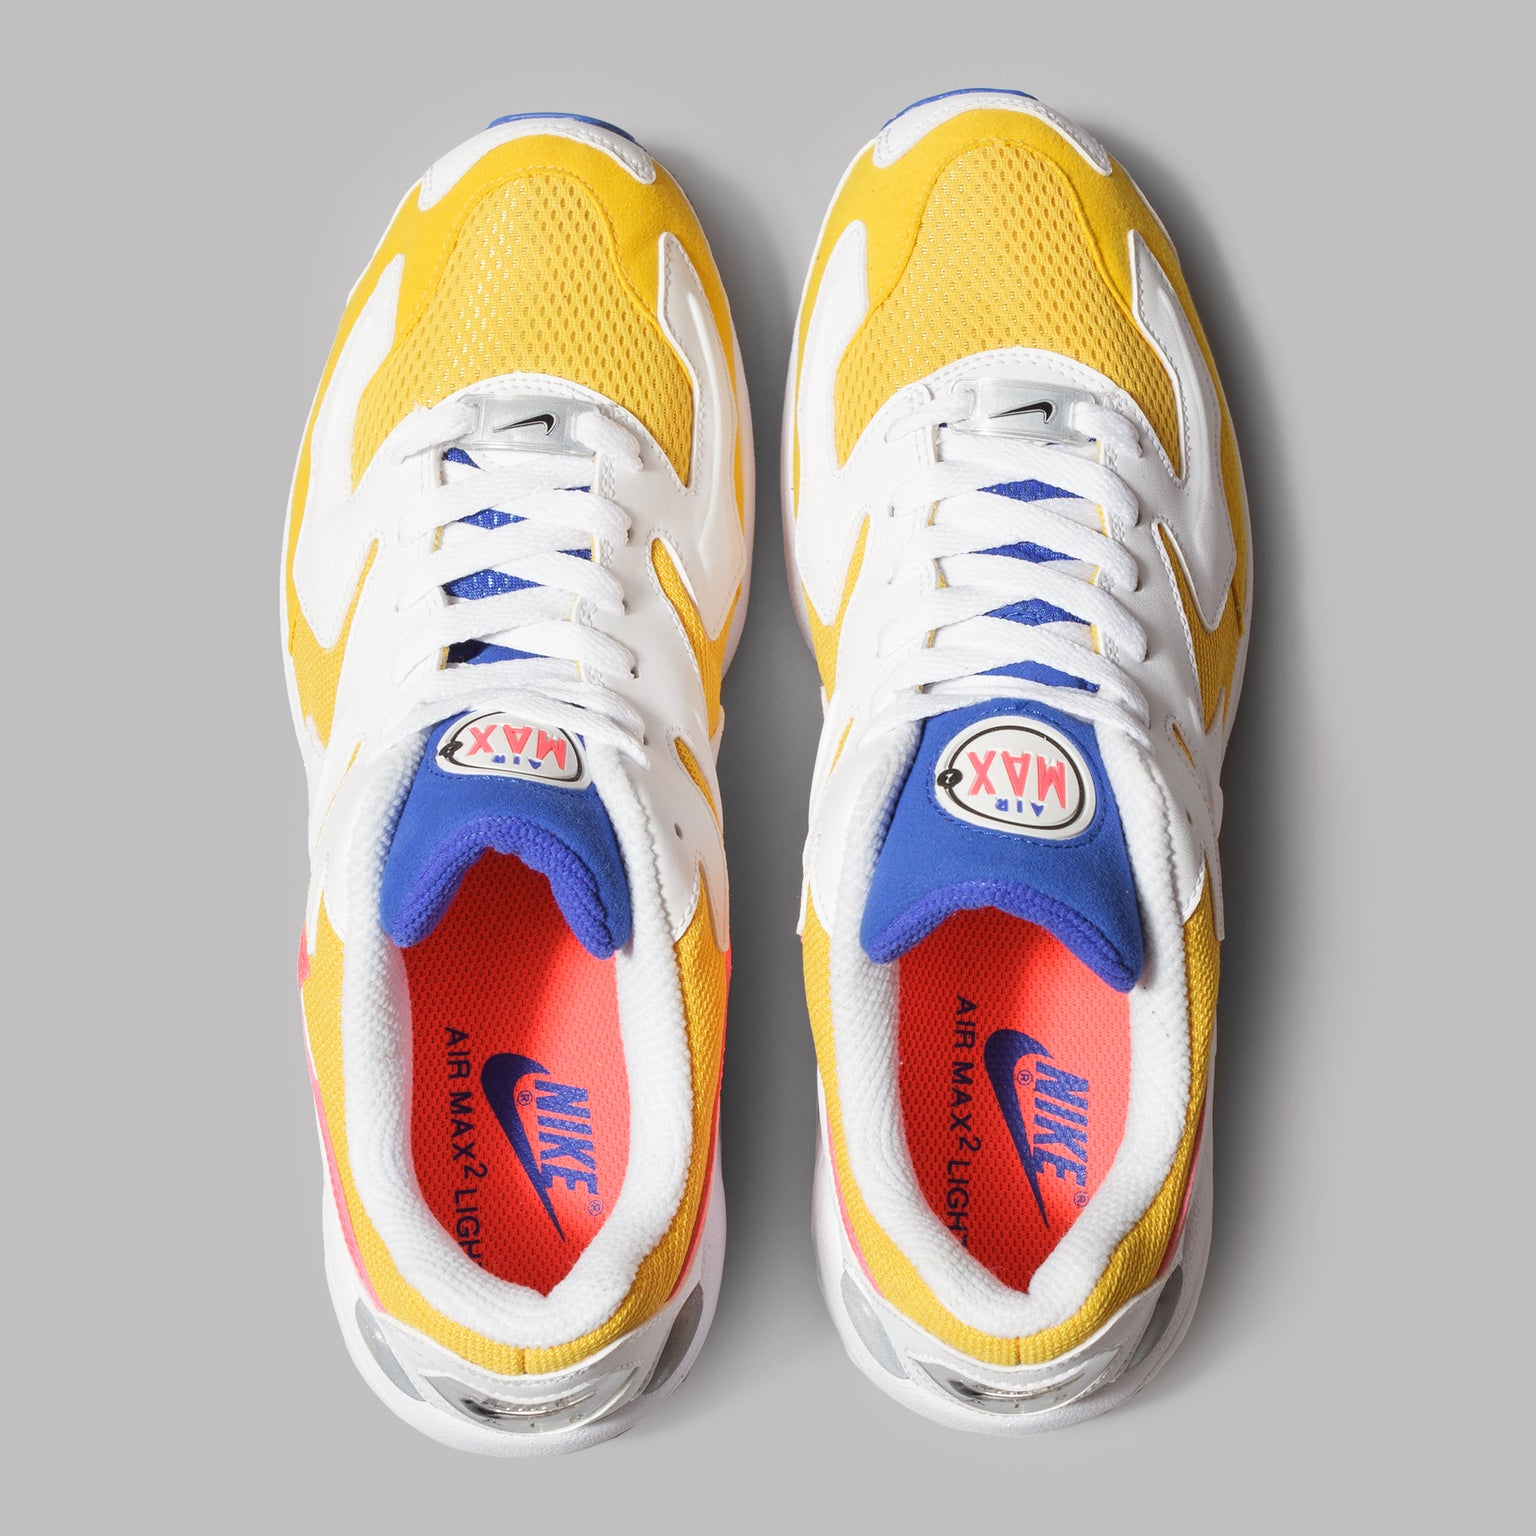 046f7623ad Nike Air Max 2 Light (University Gold / Flash Crimson / Racer Blue) ...